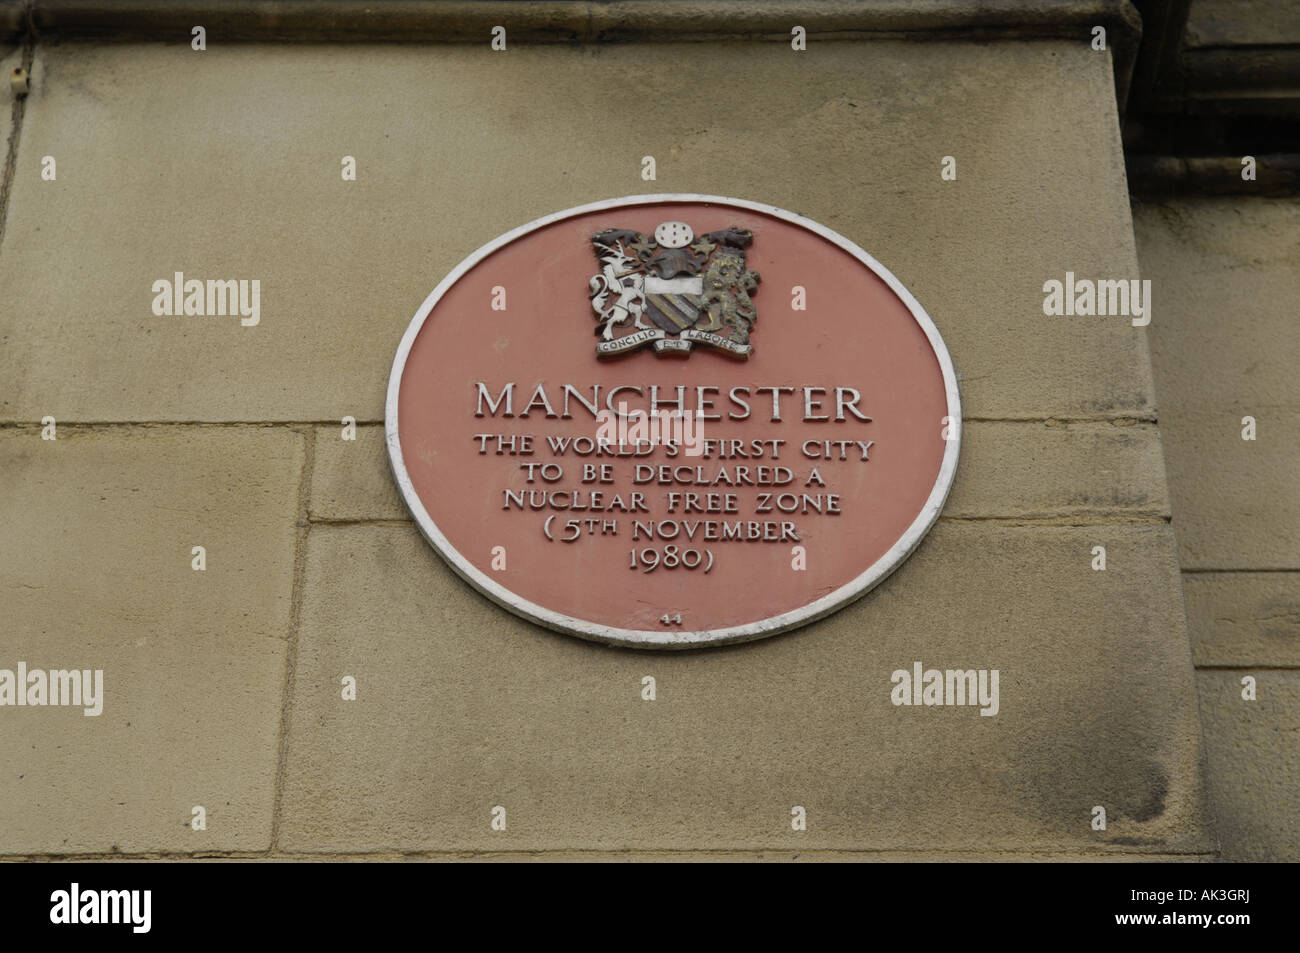 red plaque politics history manchester the world's first city to be ddeclared a nuclear free zone 5th November - Stock Image